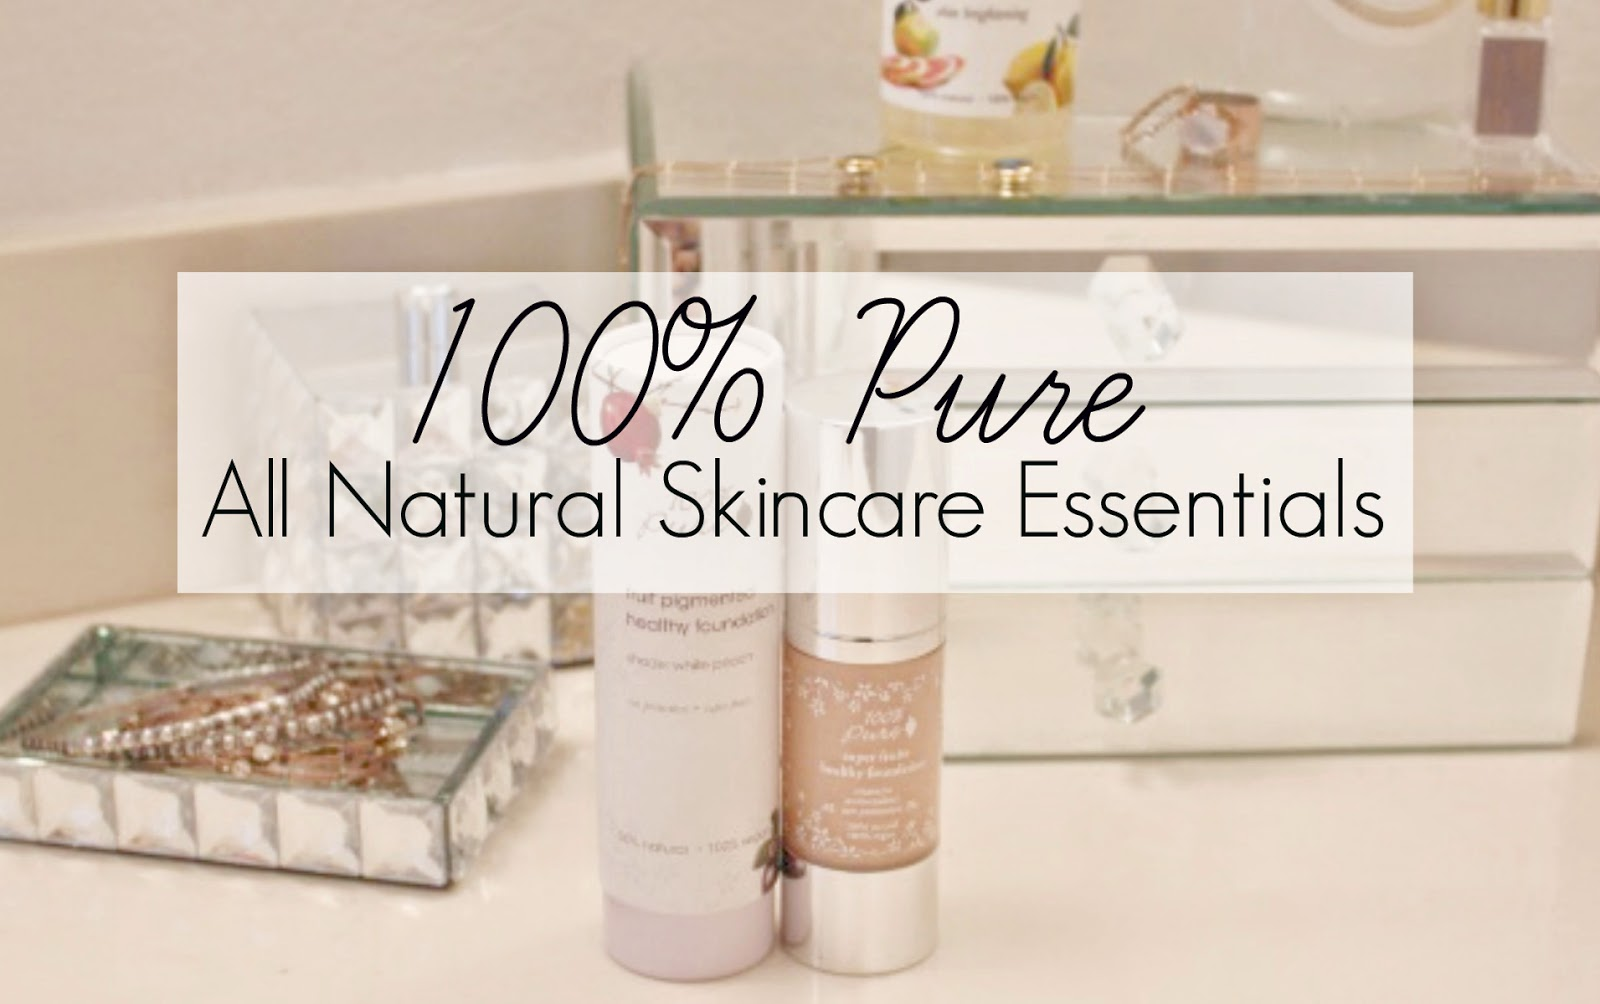 http://www.mepoopsie.com/2014/09/100-pure-all-natural-skincare.html